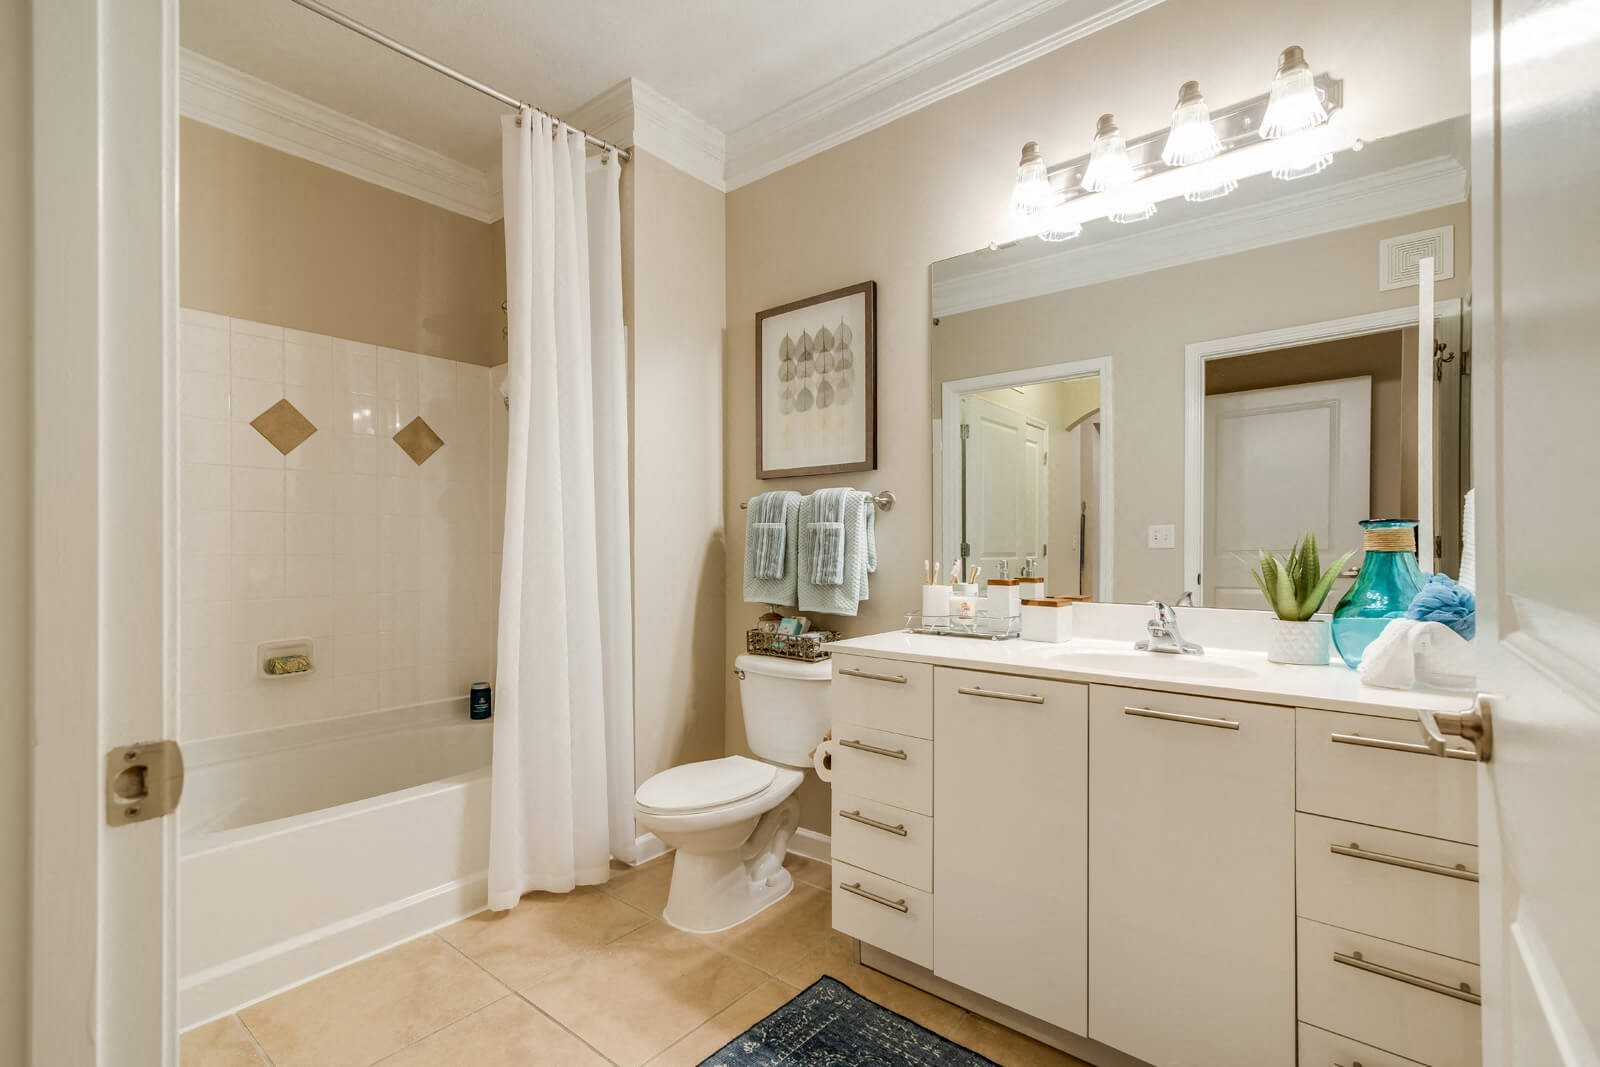 Spacious Bathrooms with Built-In Storage at Windsor at Contee Crossing, Laurel, MD